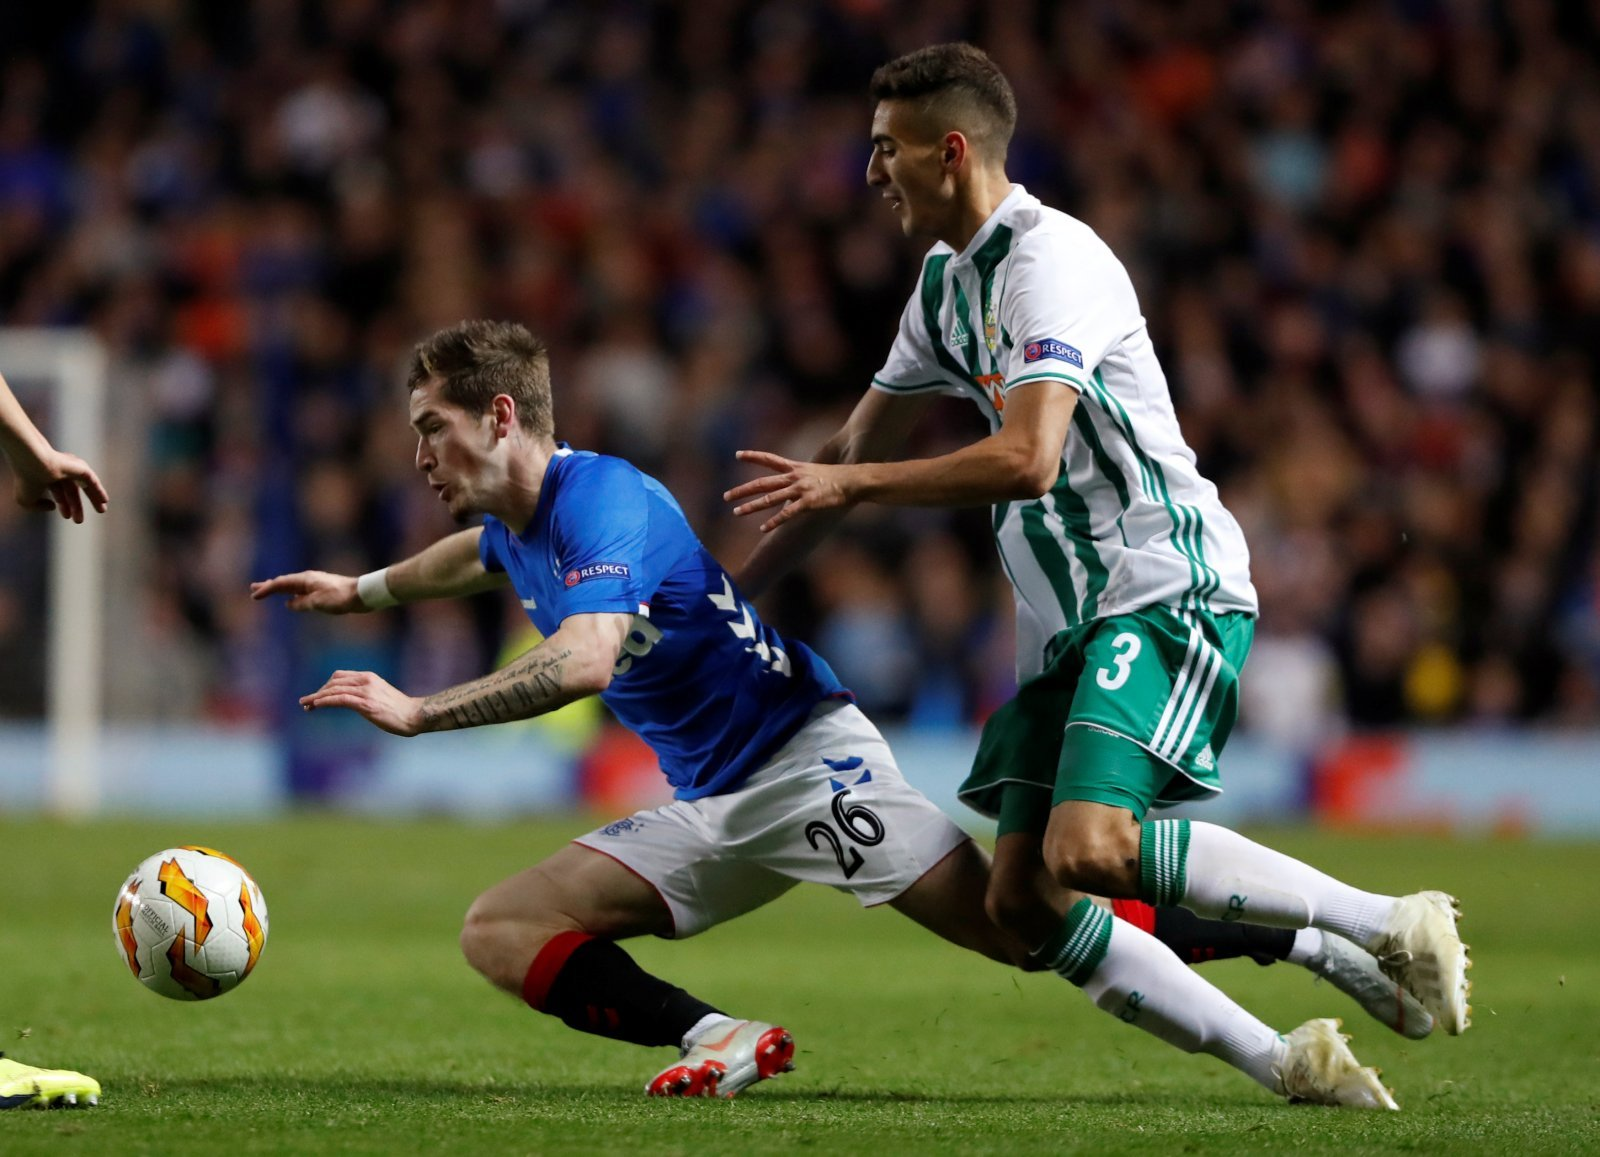 Rangers: Steven Gerrard should forget about re-signing Ryan Kent after latest twist